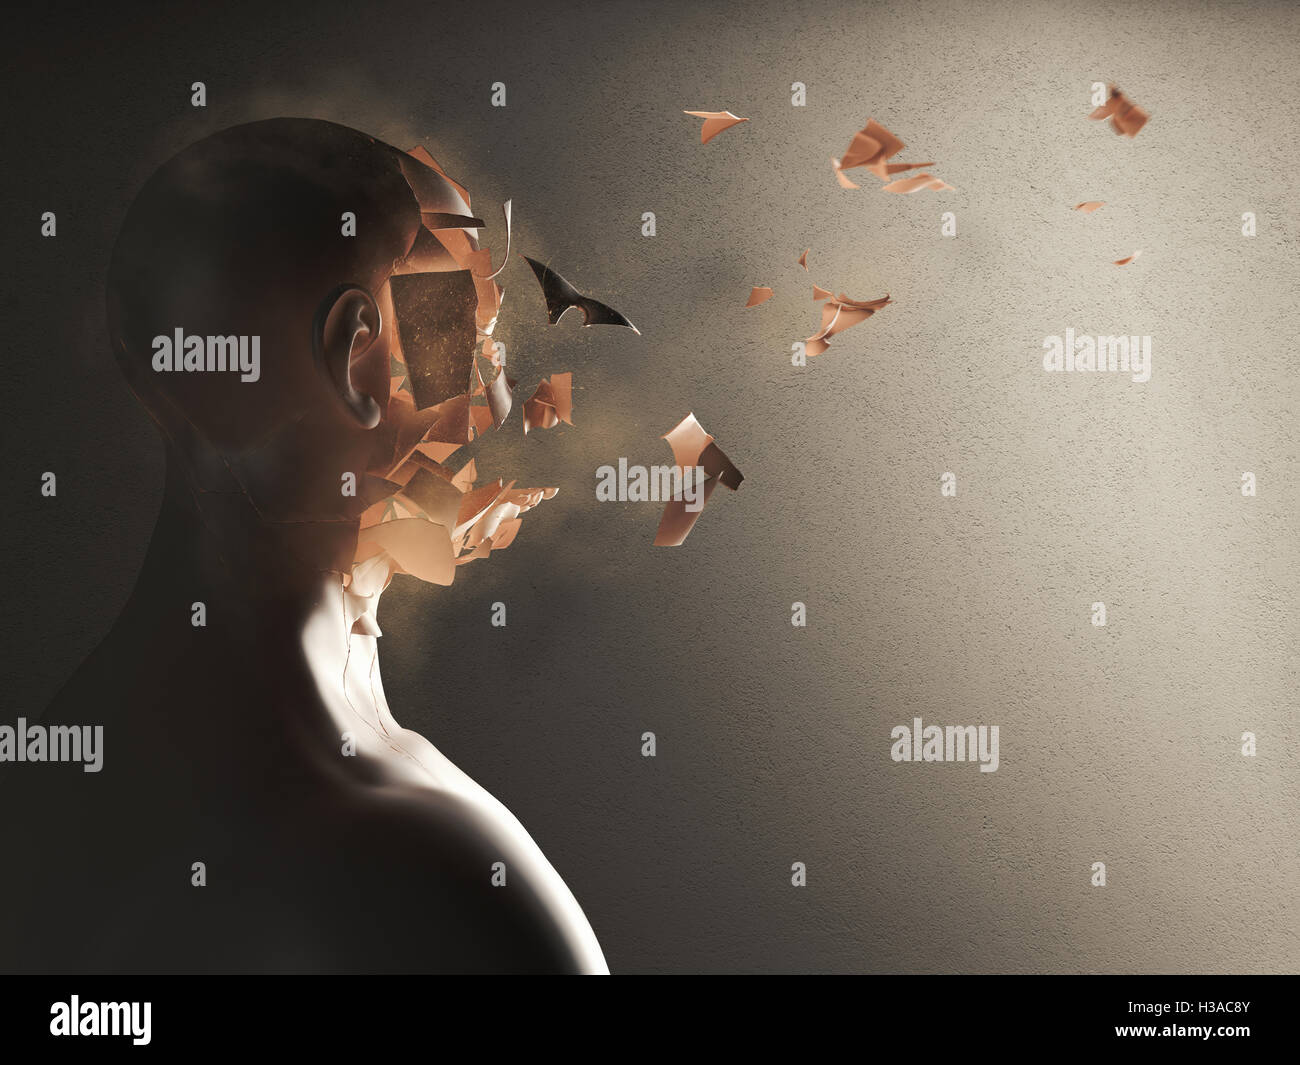 Disintegration of the soul. 3D Rendering - Stock Image